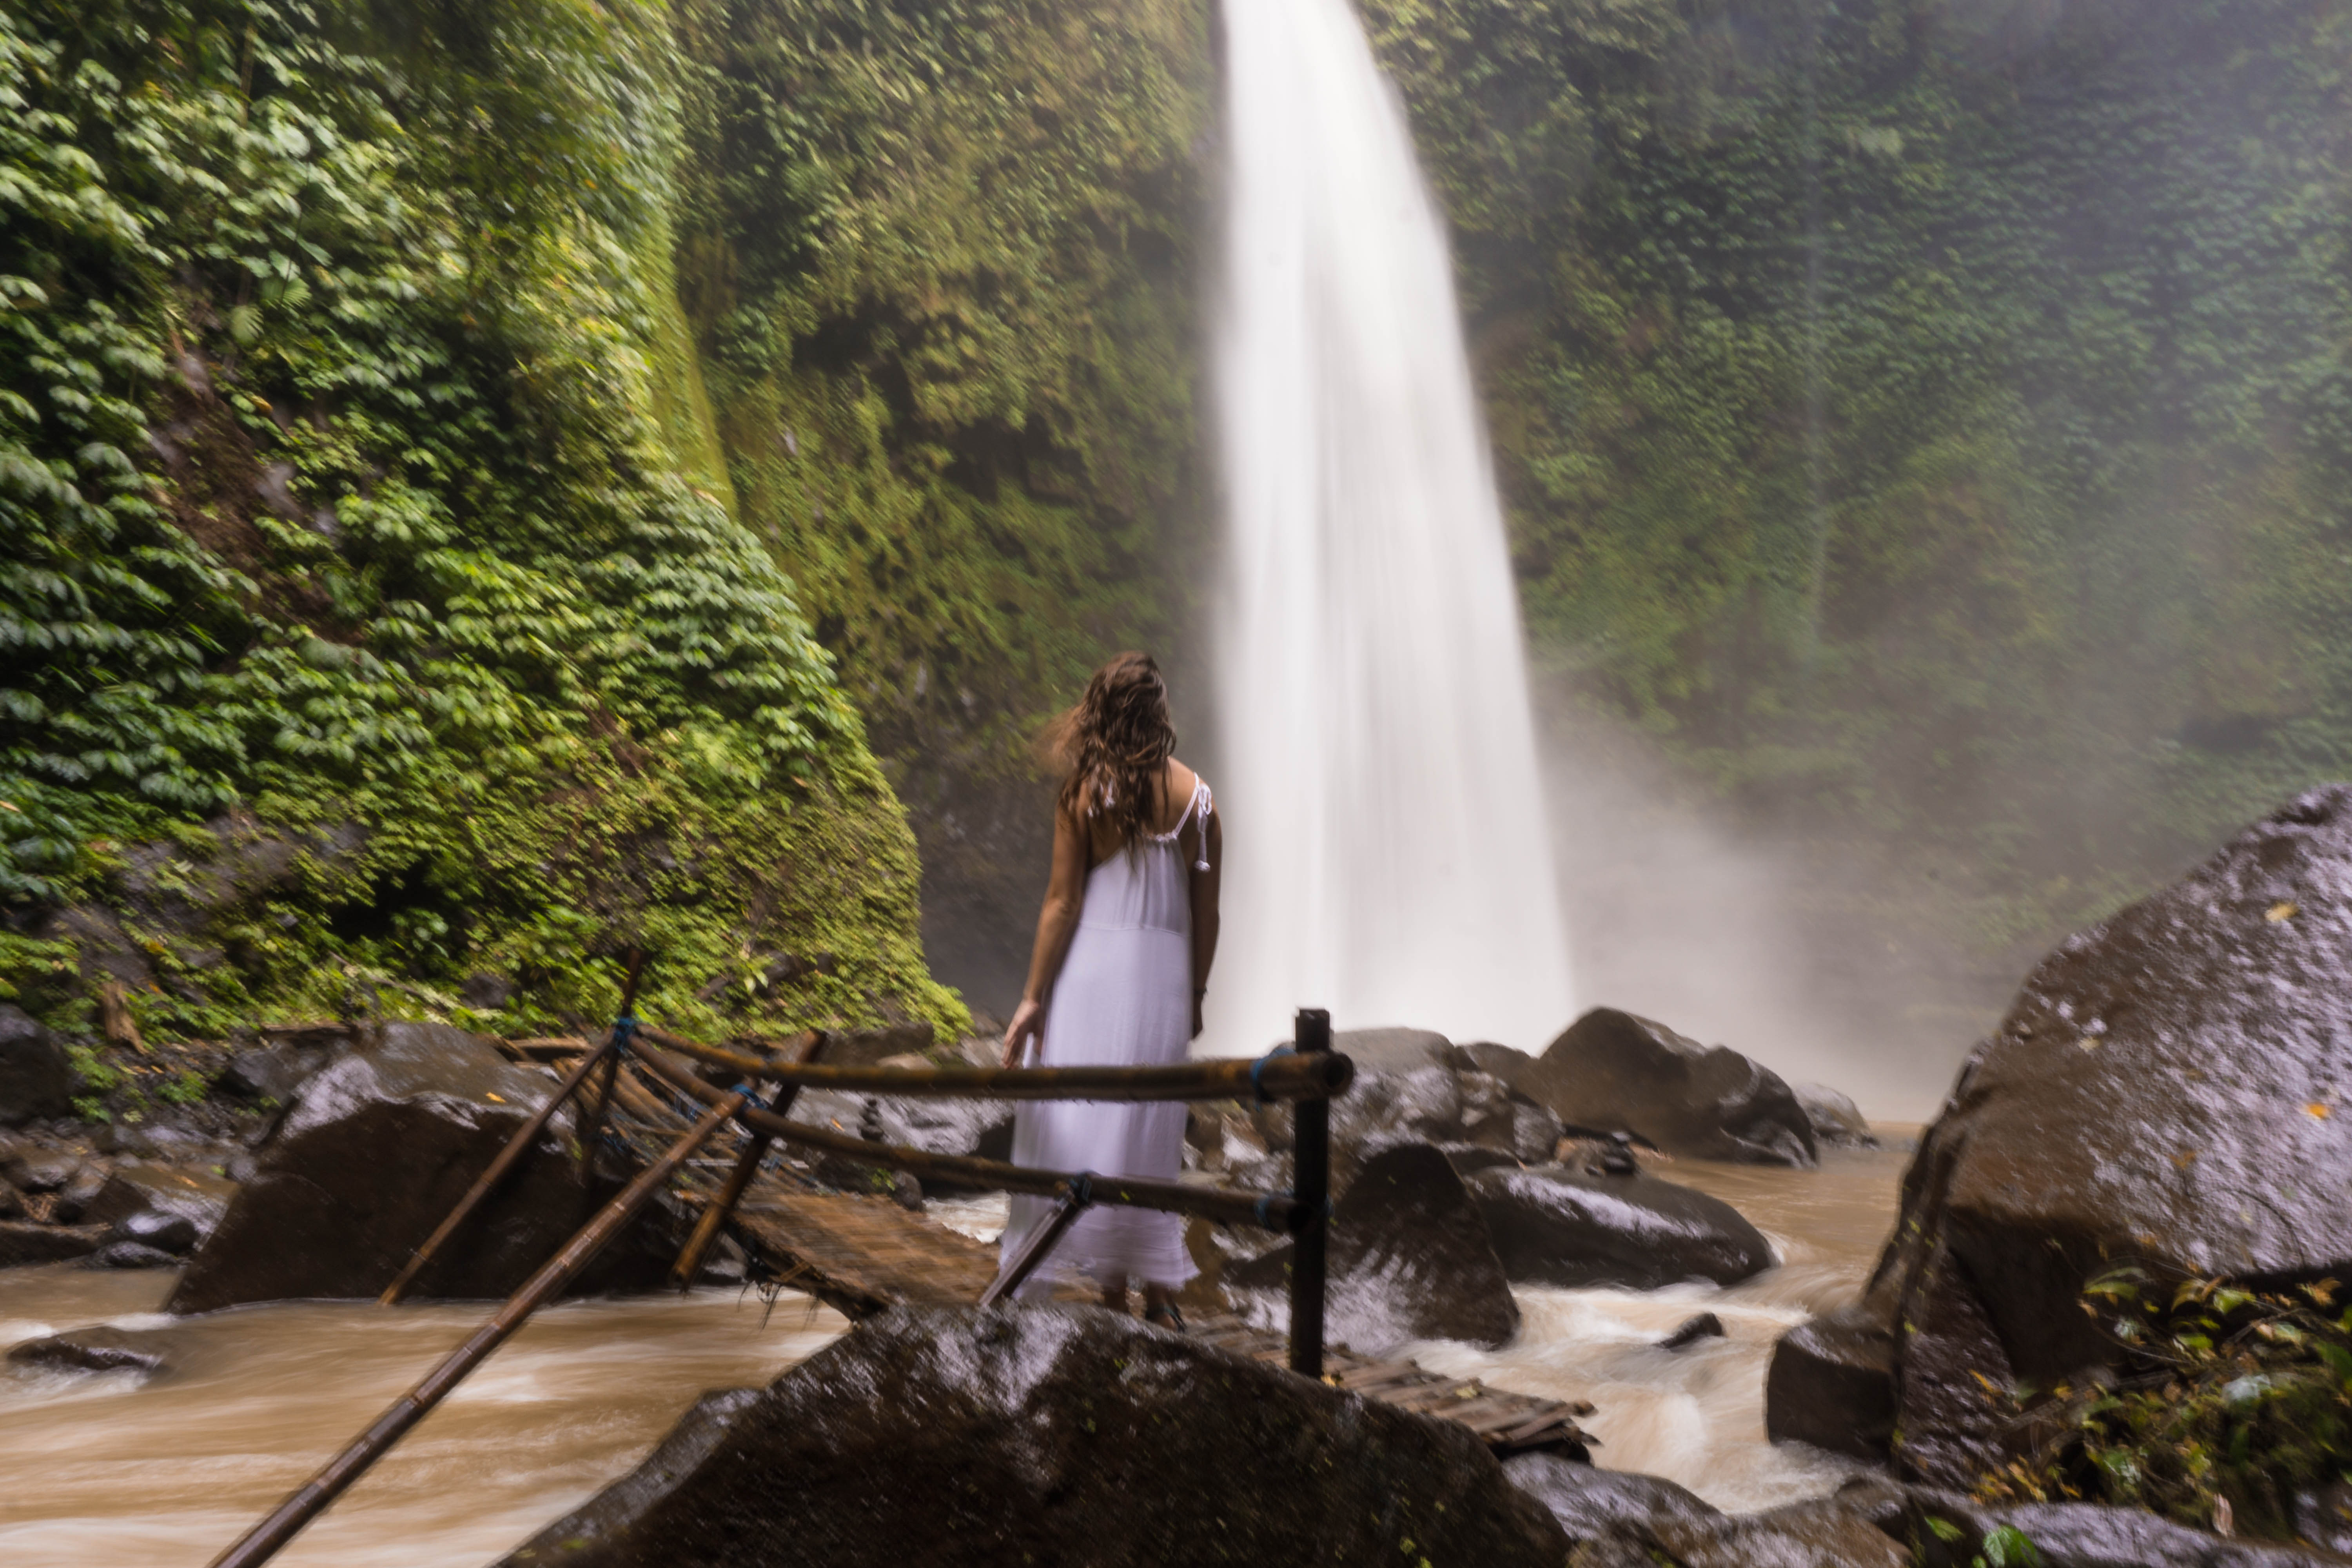 Visiting Nungnung Waterfall in Bali